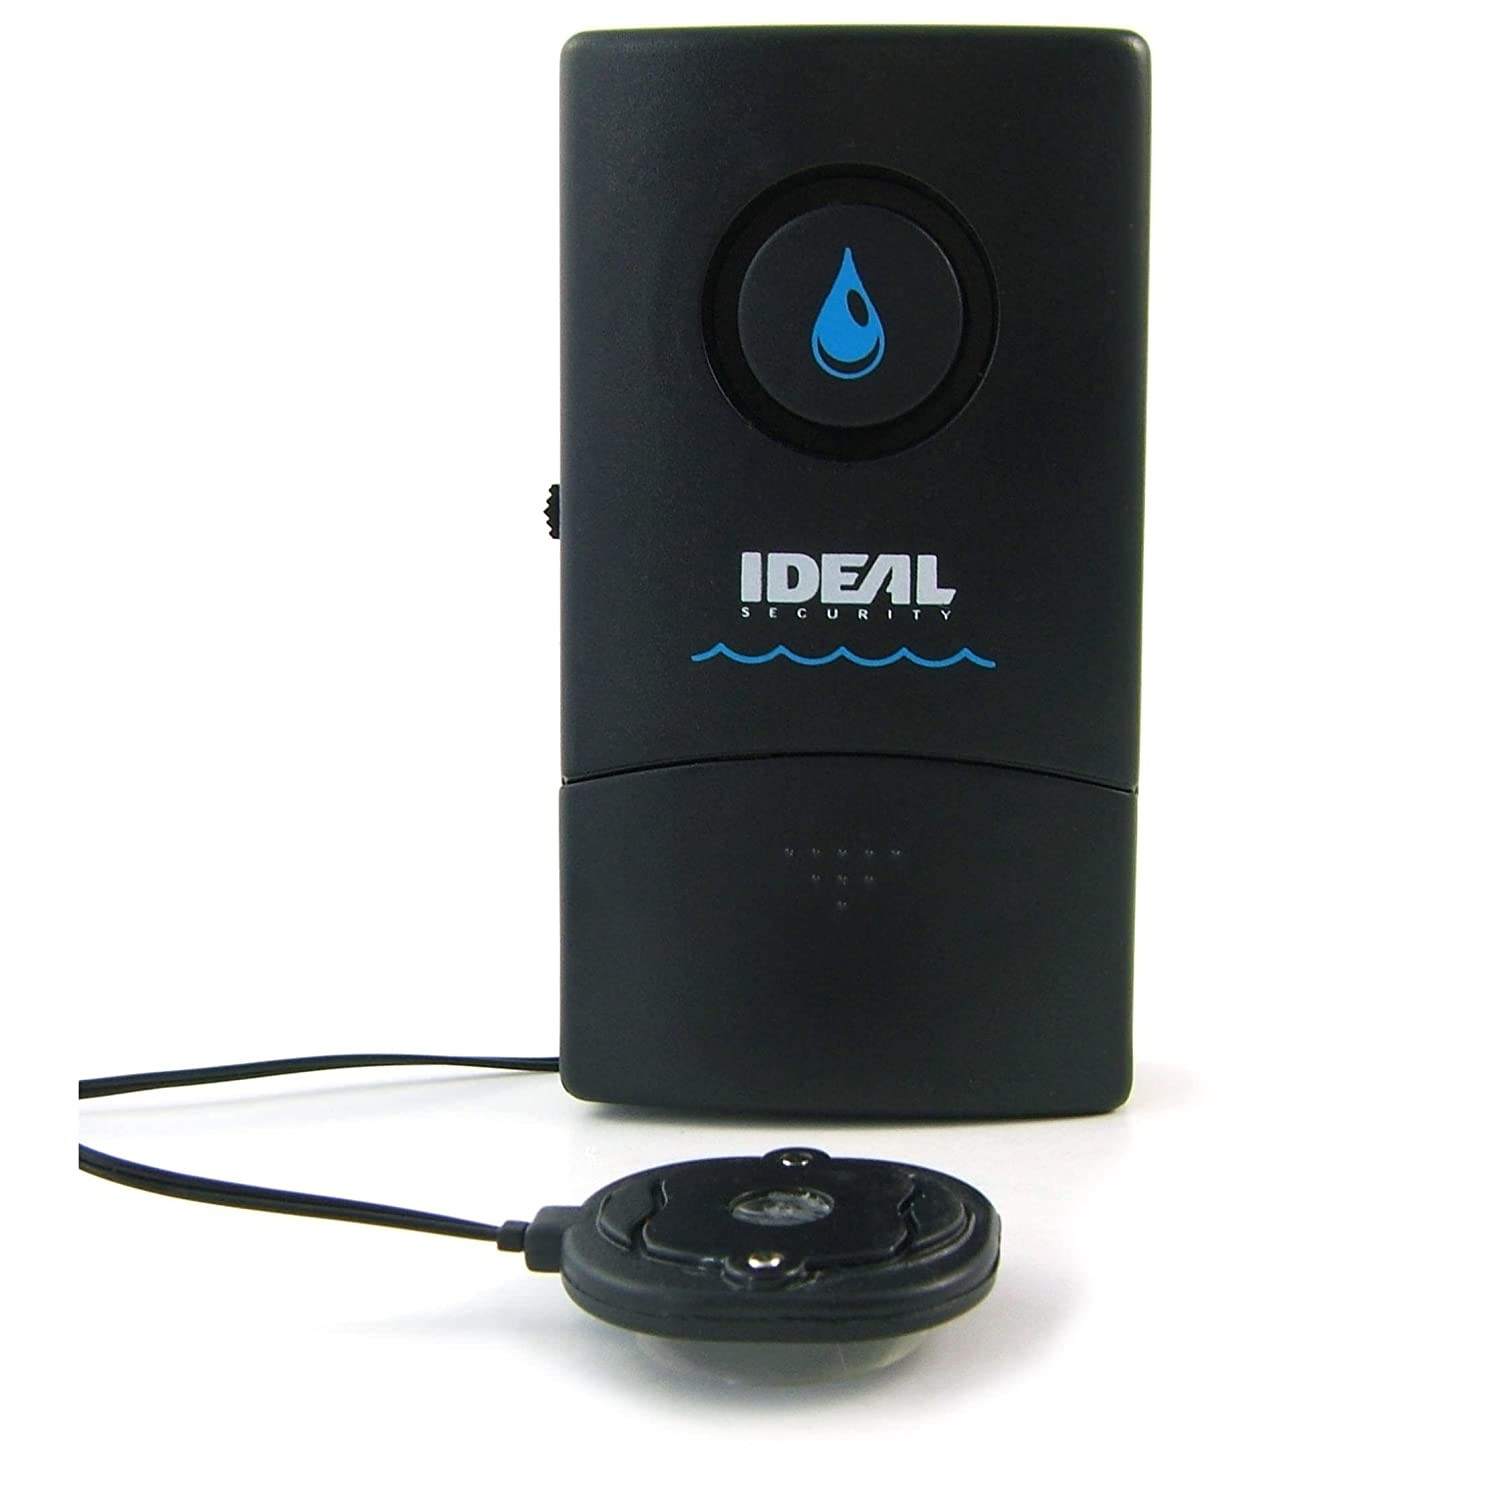 Ideal Security Inc. SK606BL Flood Water and Overflow Alarm, Black